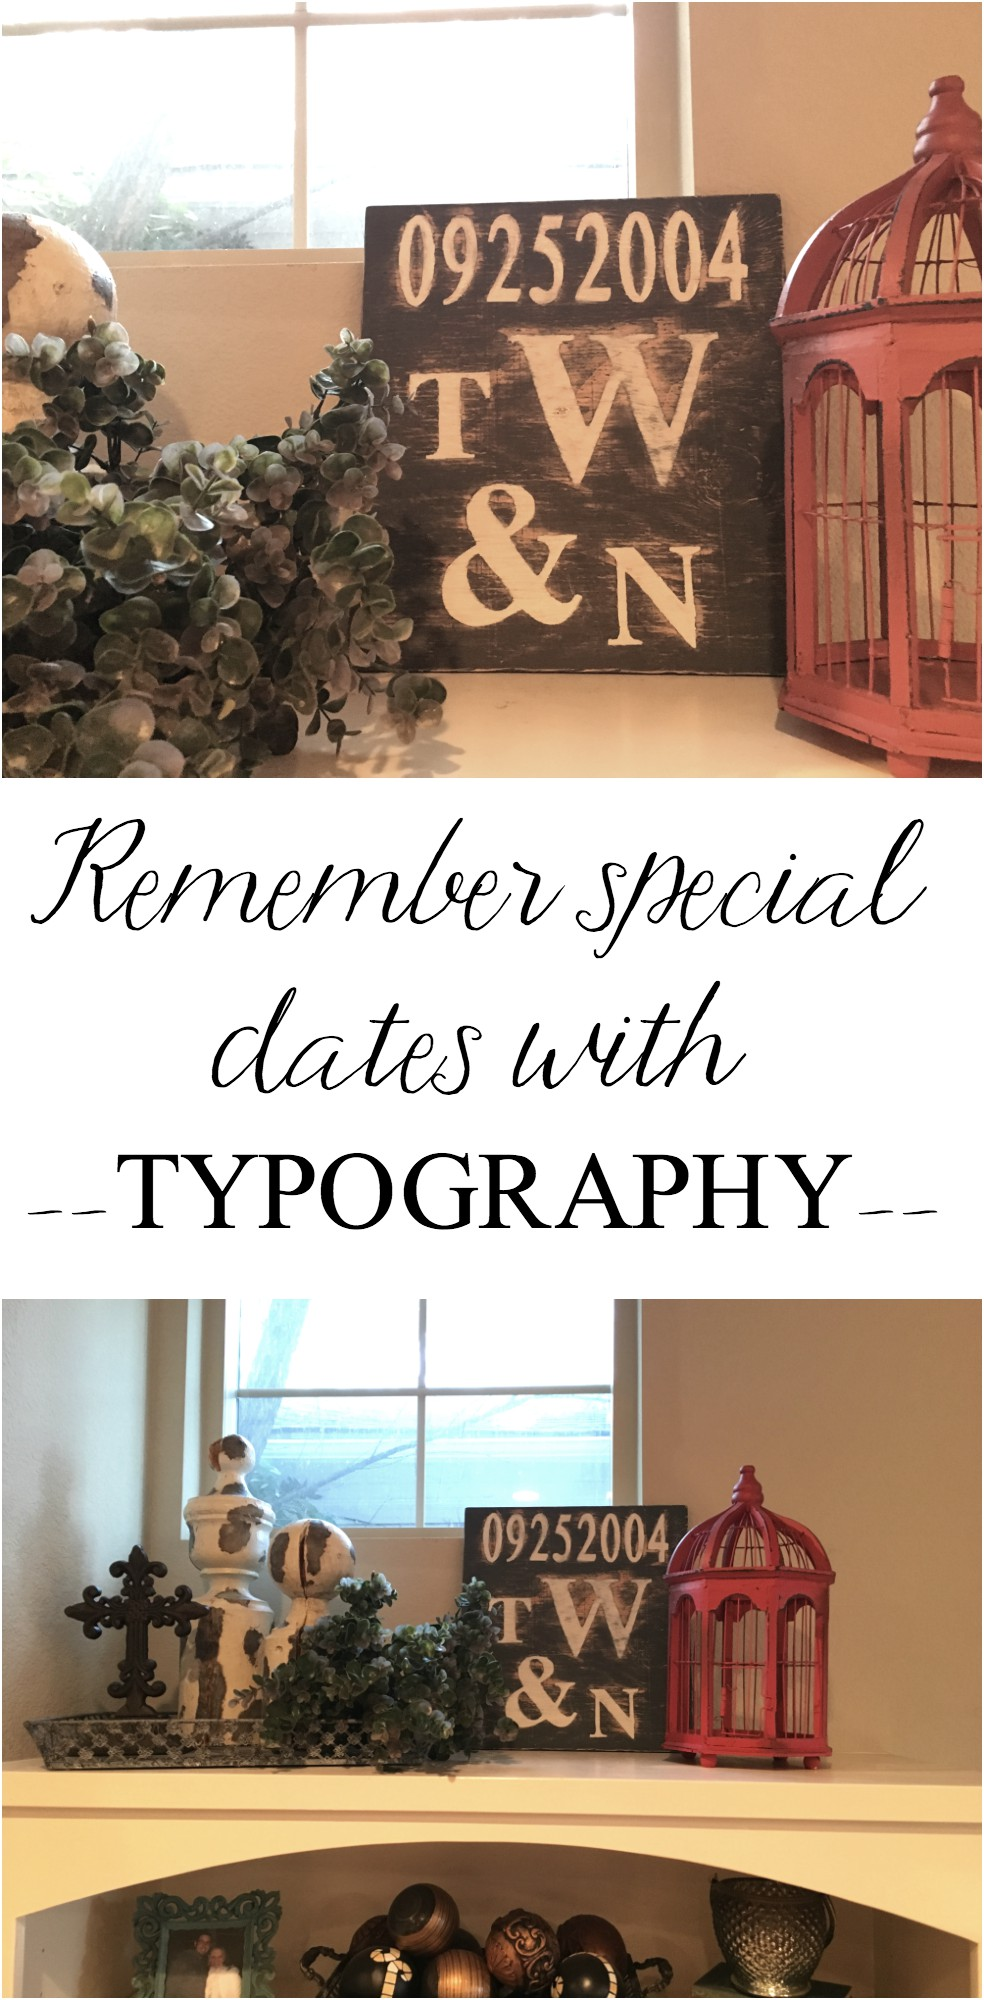 Make your own typography to commemorate special dates like anniversaries, birthdays, etc. Easy and cheap project using scrap wood.